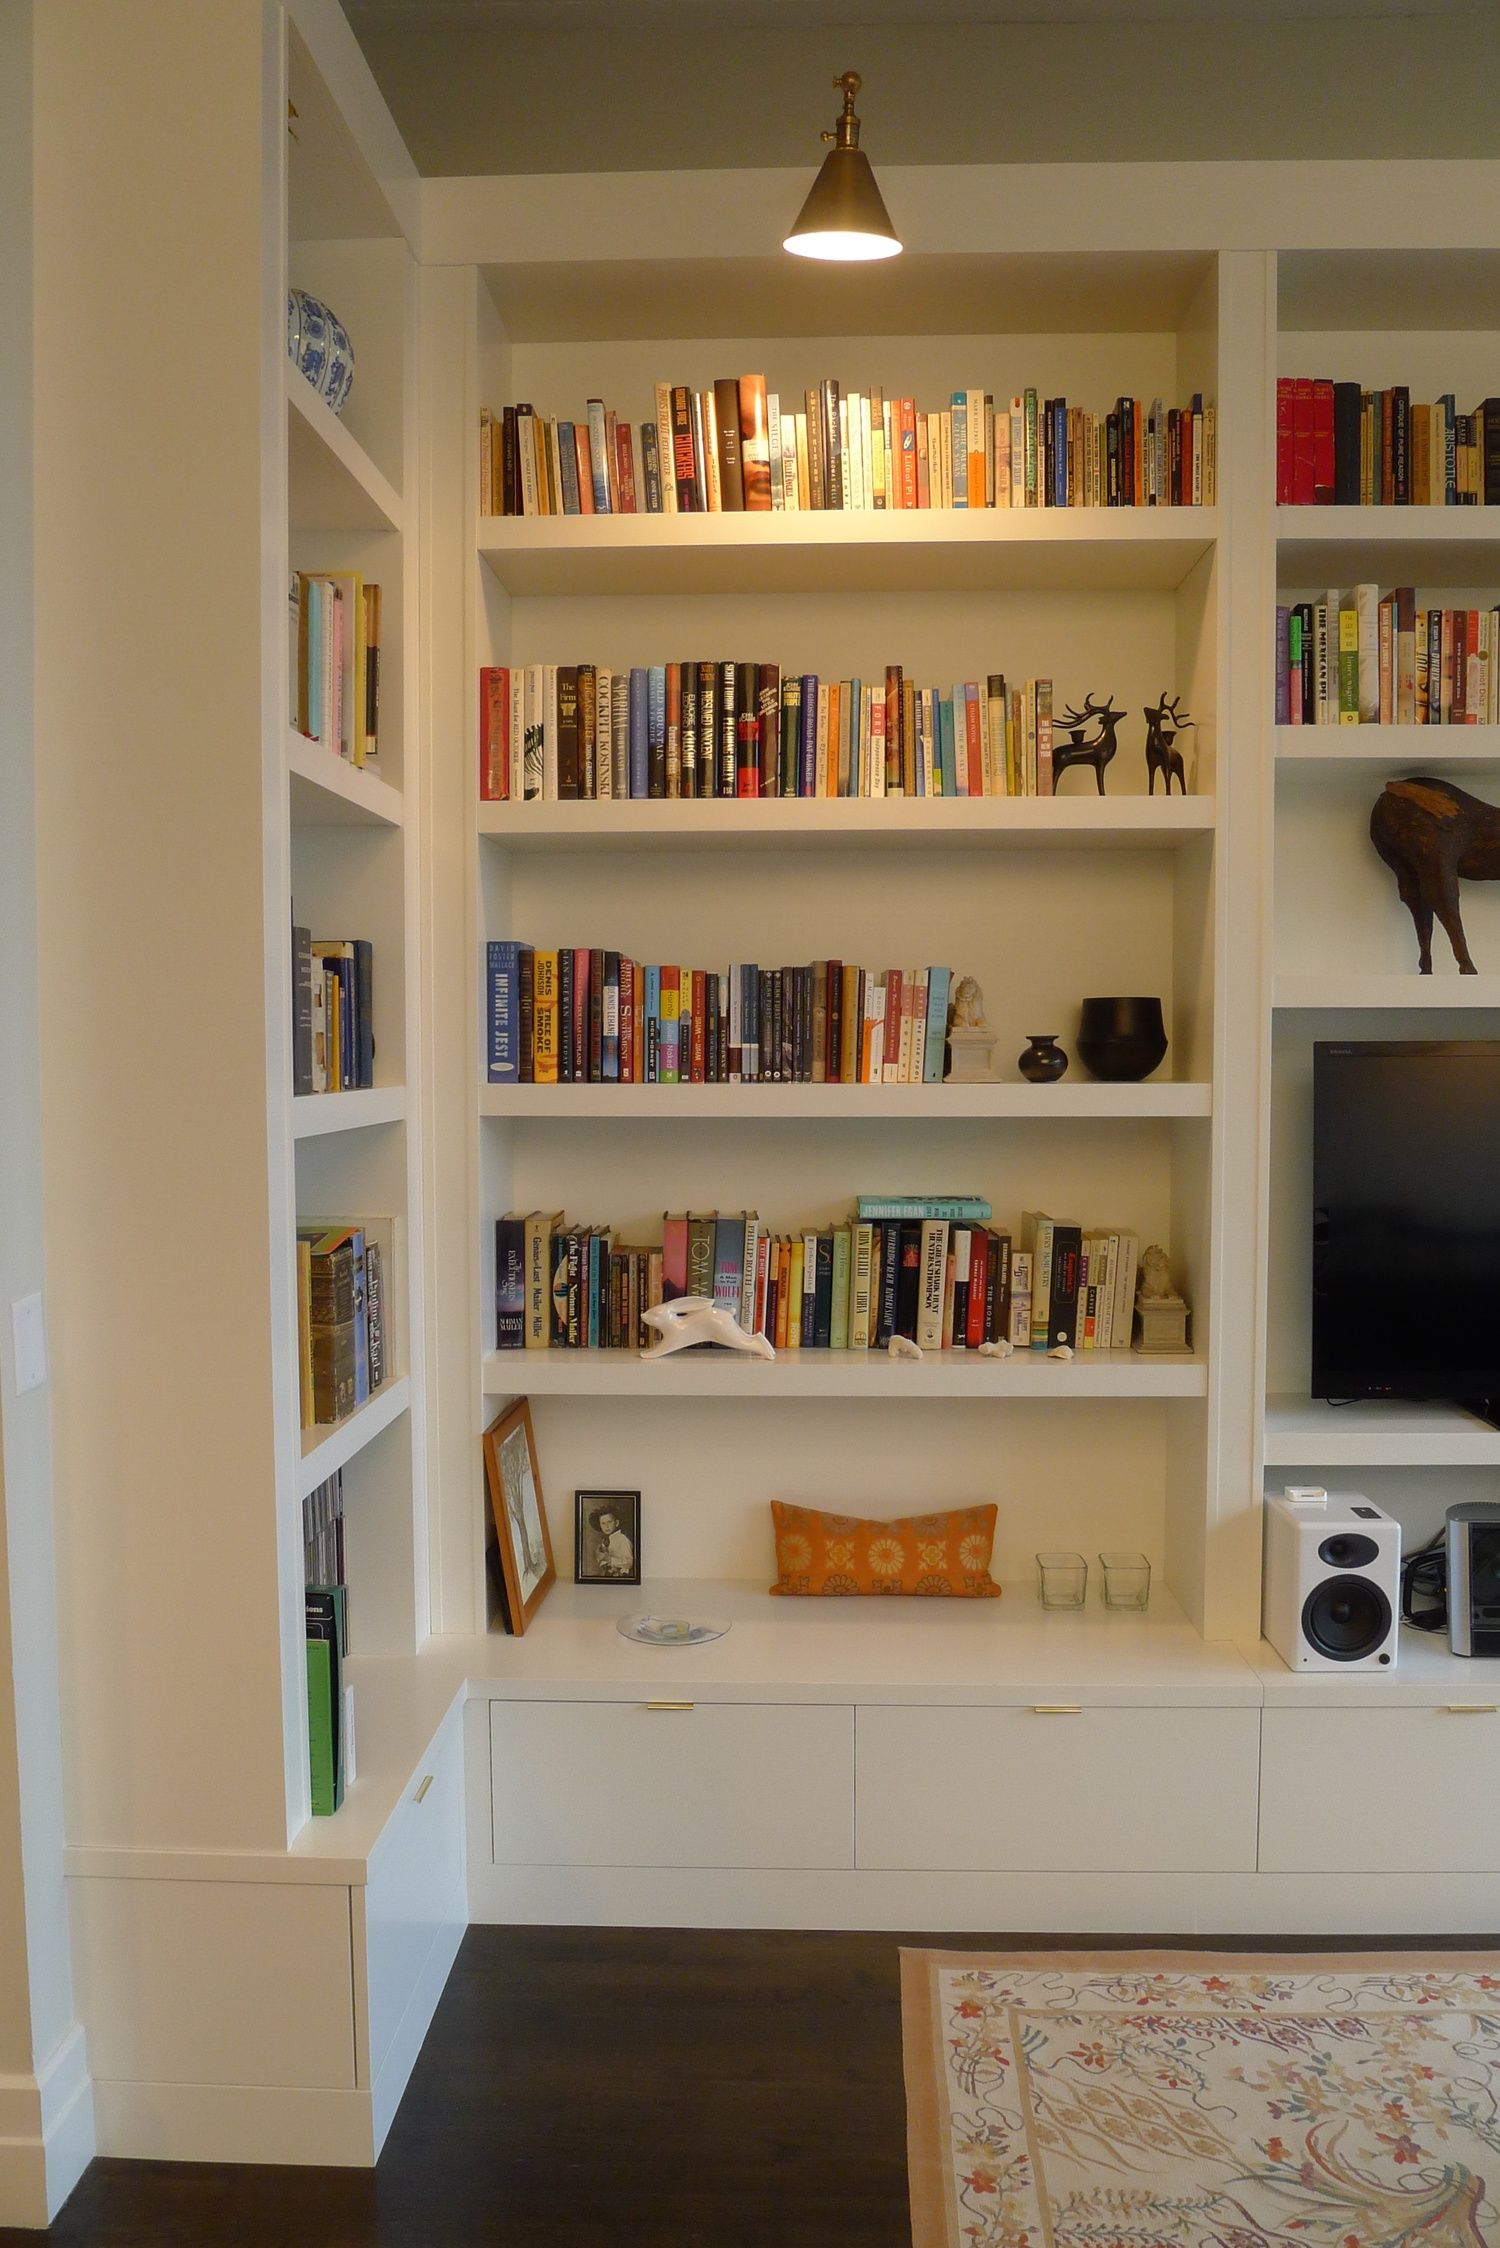 stunning living room cabinets shelves | Library Cabinetry | Custom Bookcase | Built-in Shelving ...